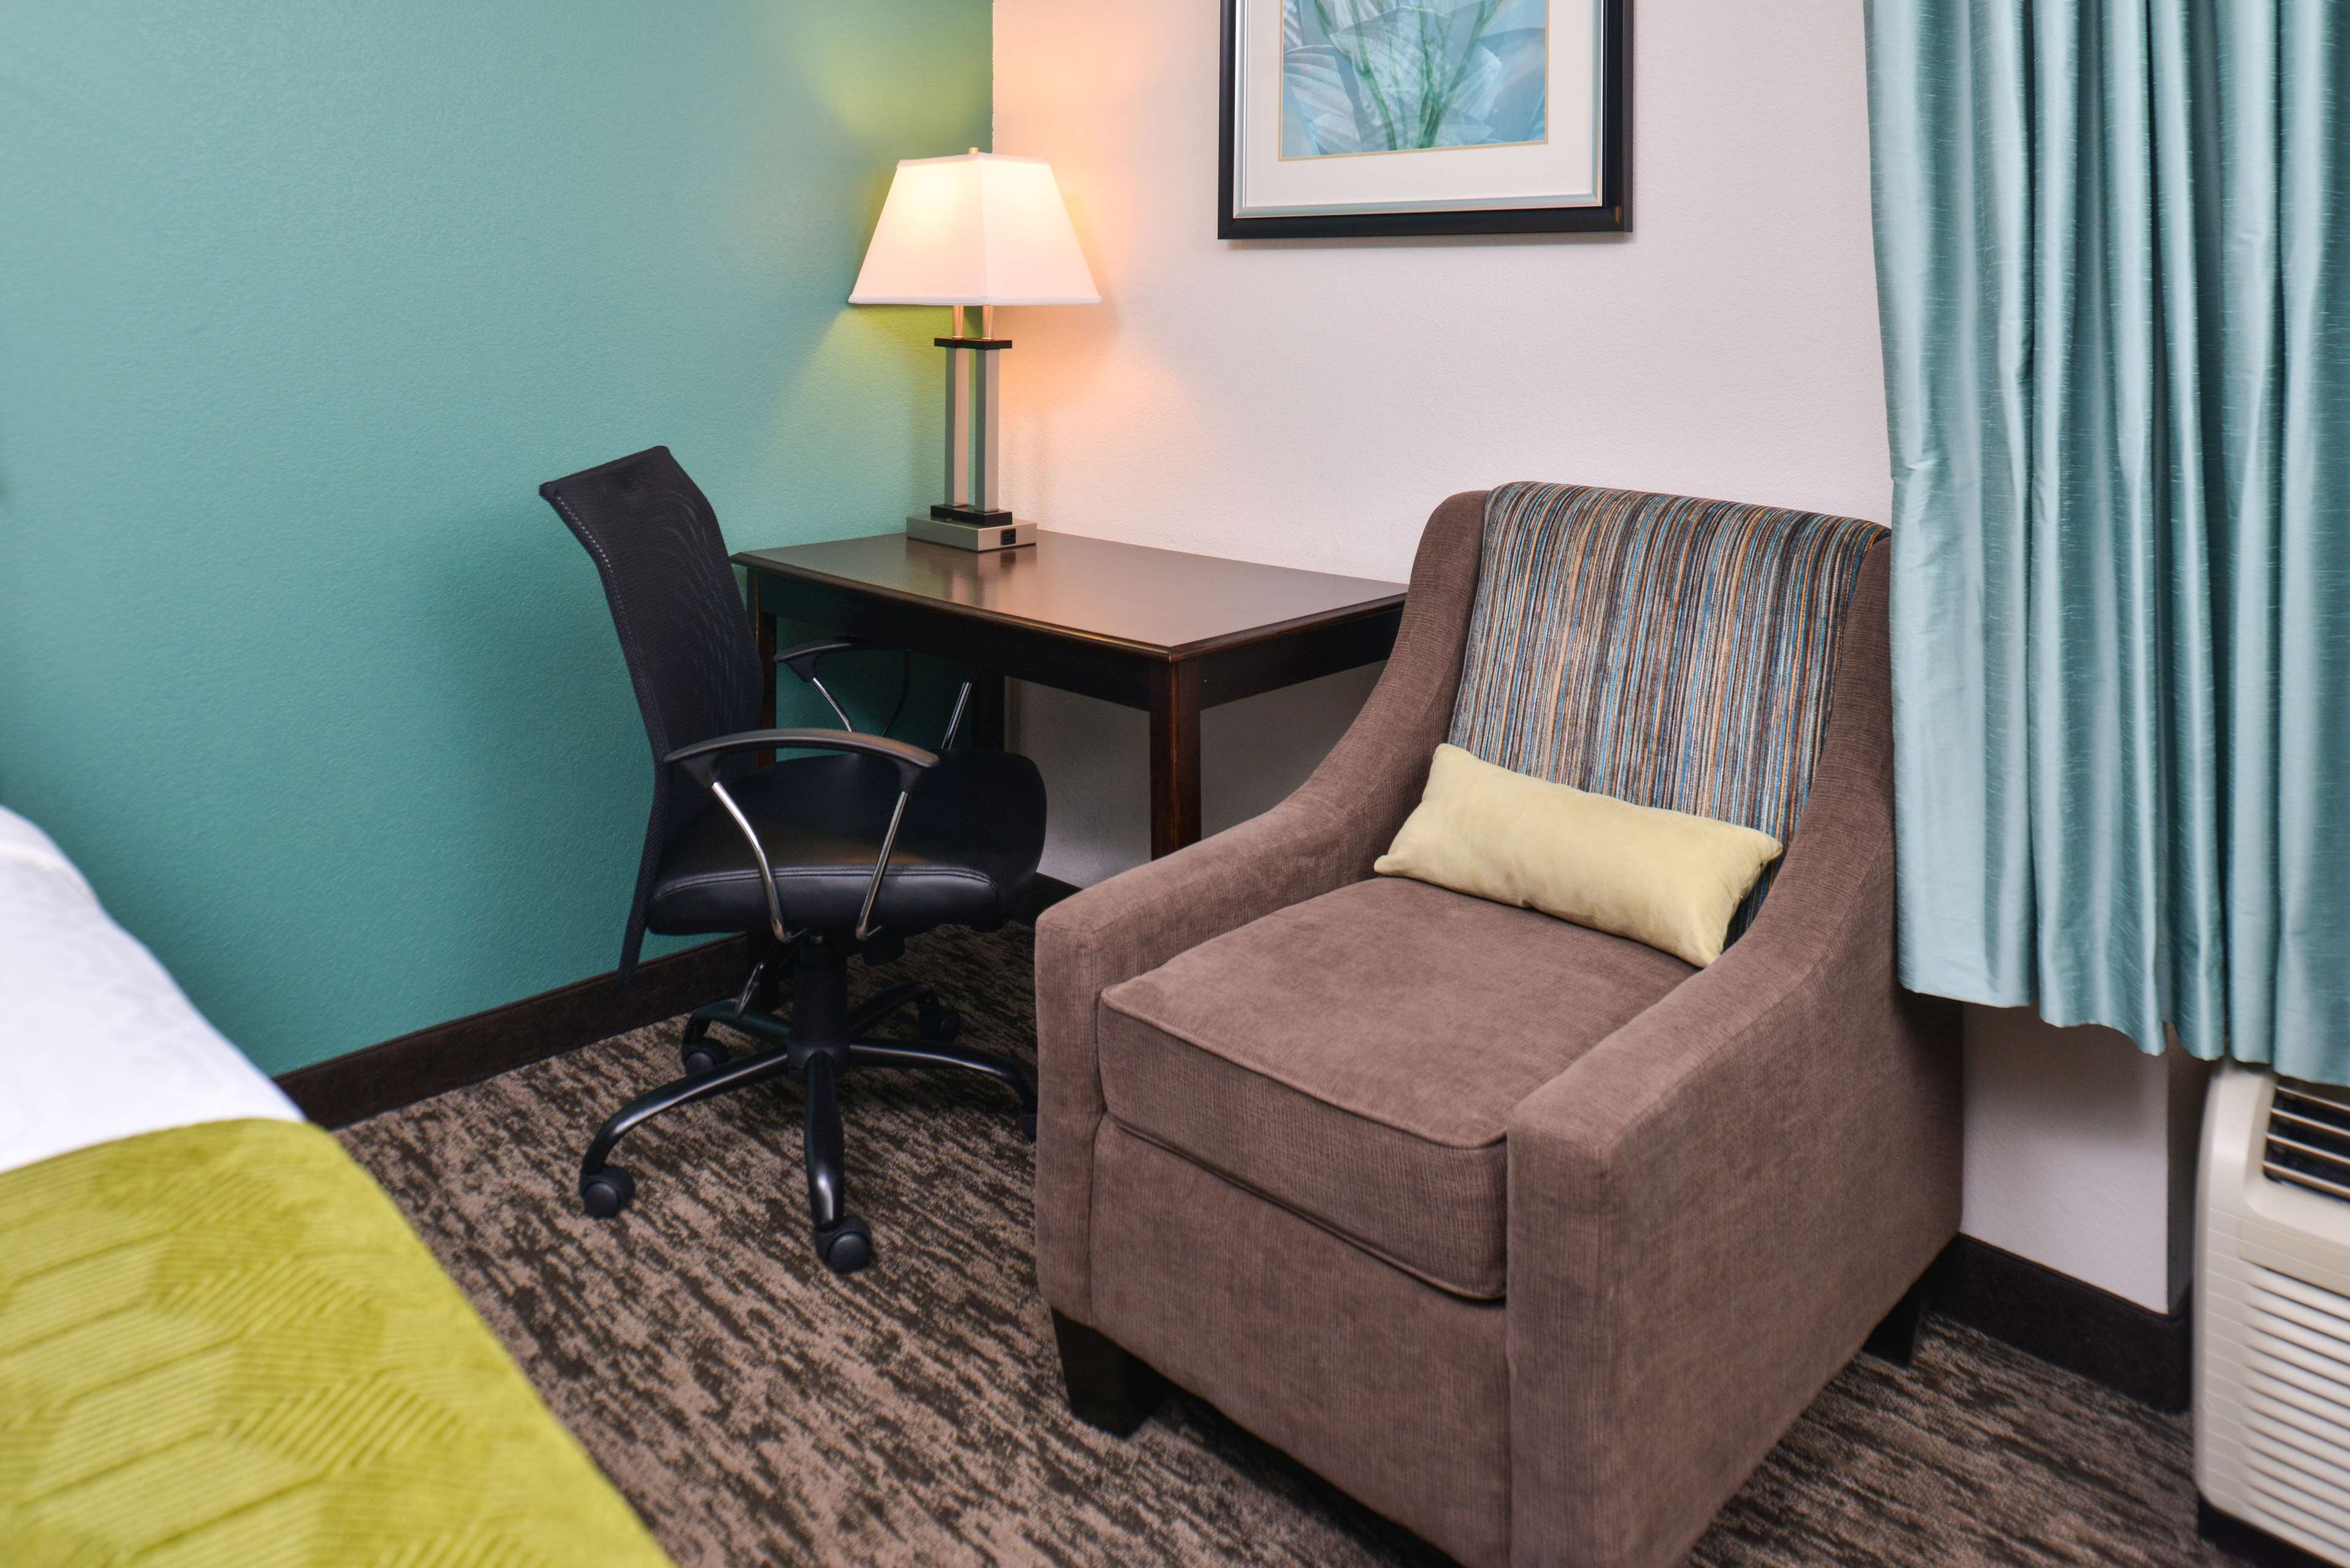 Best Western Plus Chicagoland - Countryside image 26